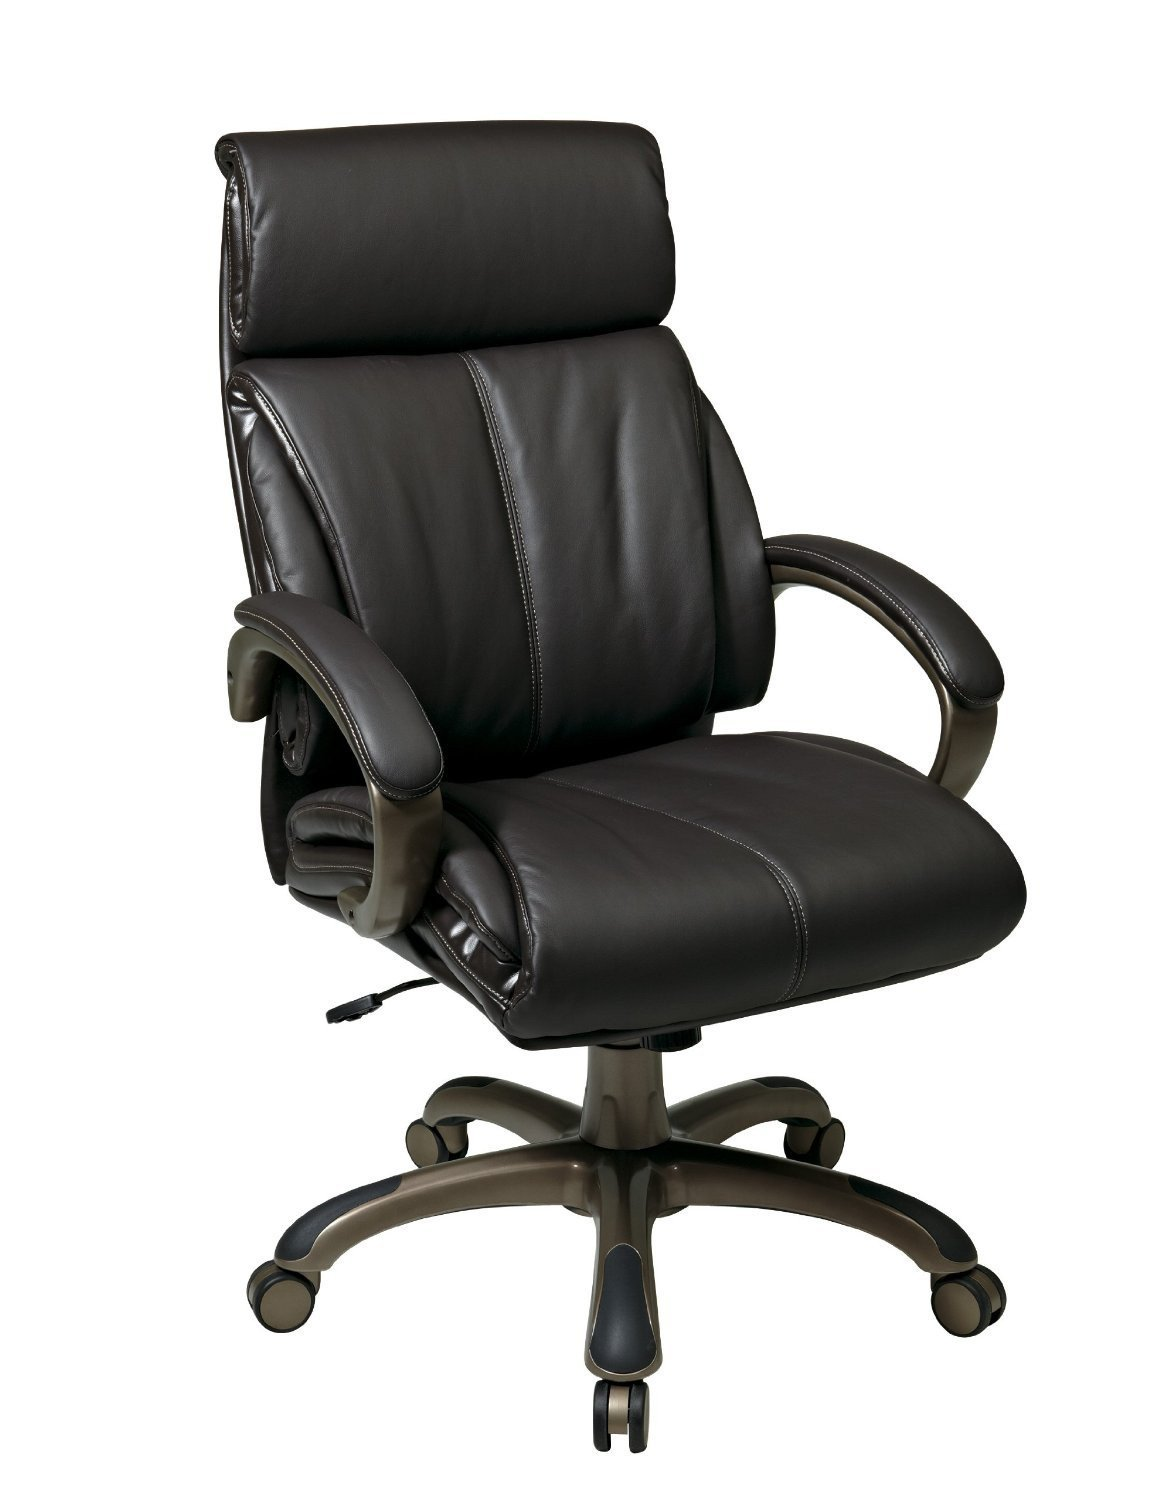 Office Star Work Smart ECH68801 EC1 Executive Espresso Eco Leather Chair With Locking Tilt Control